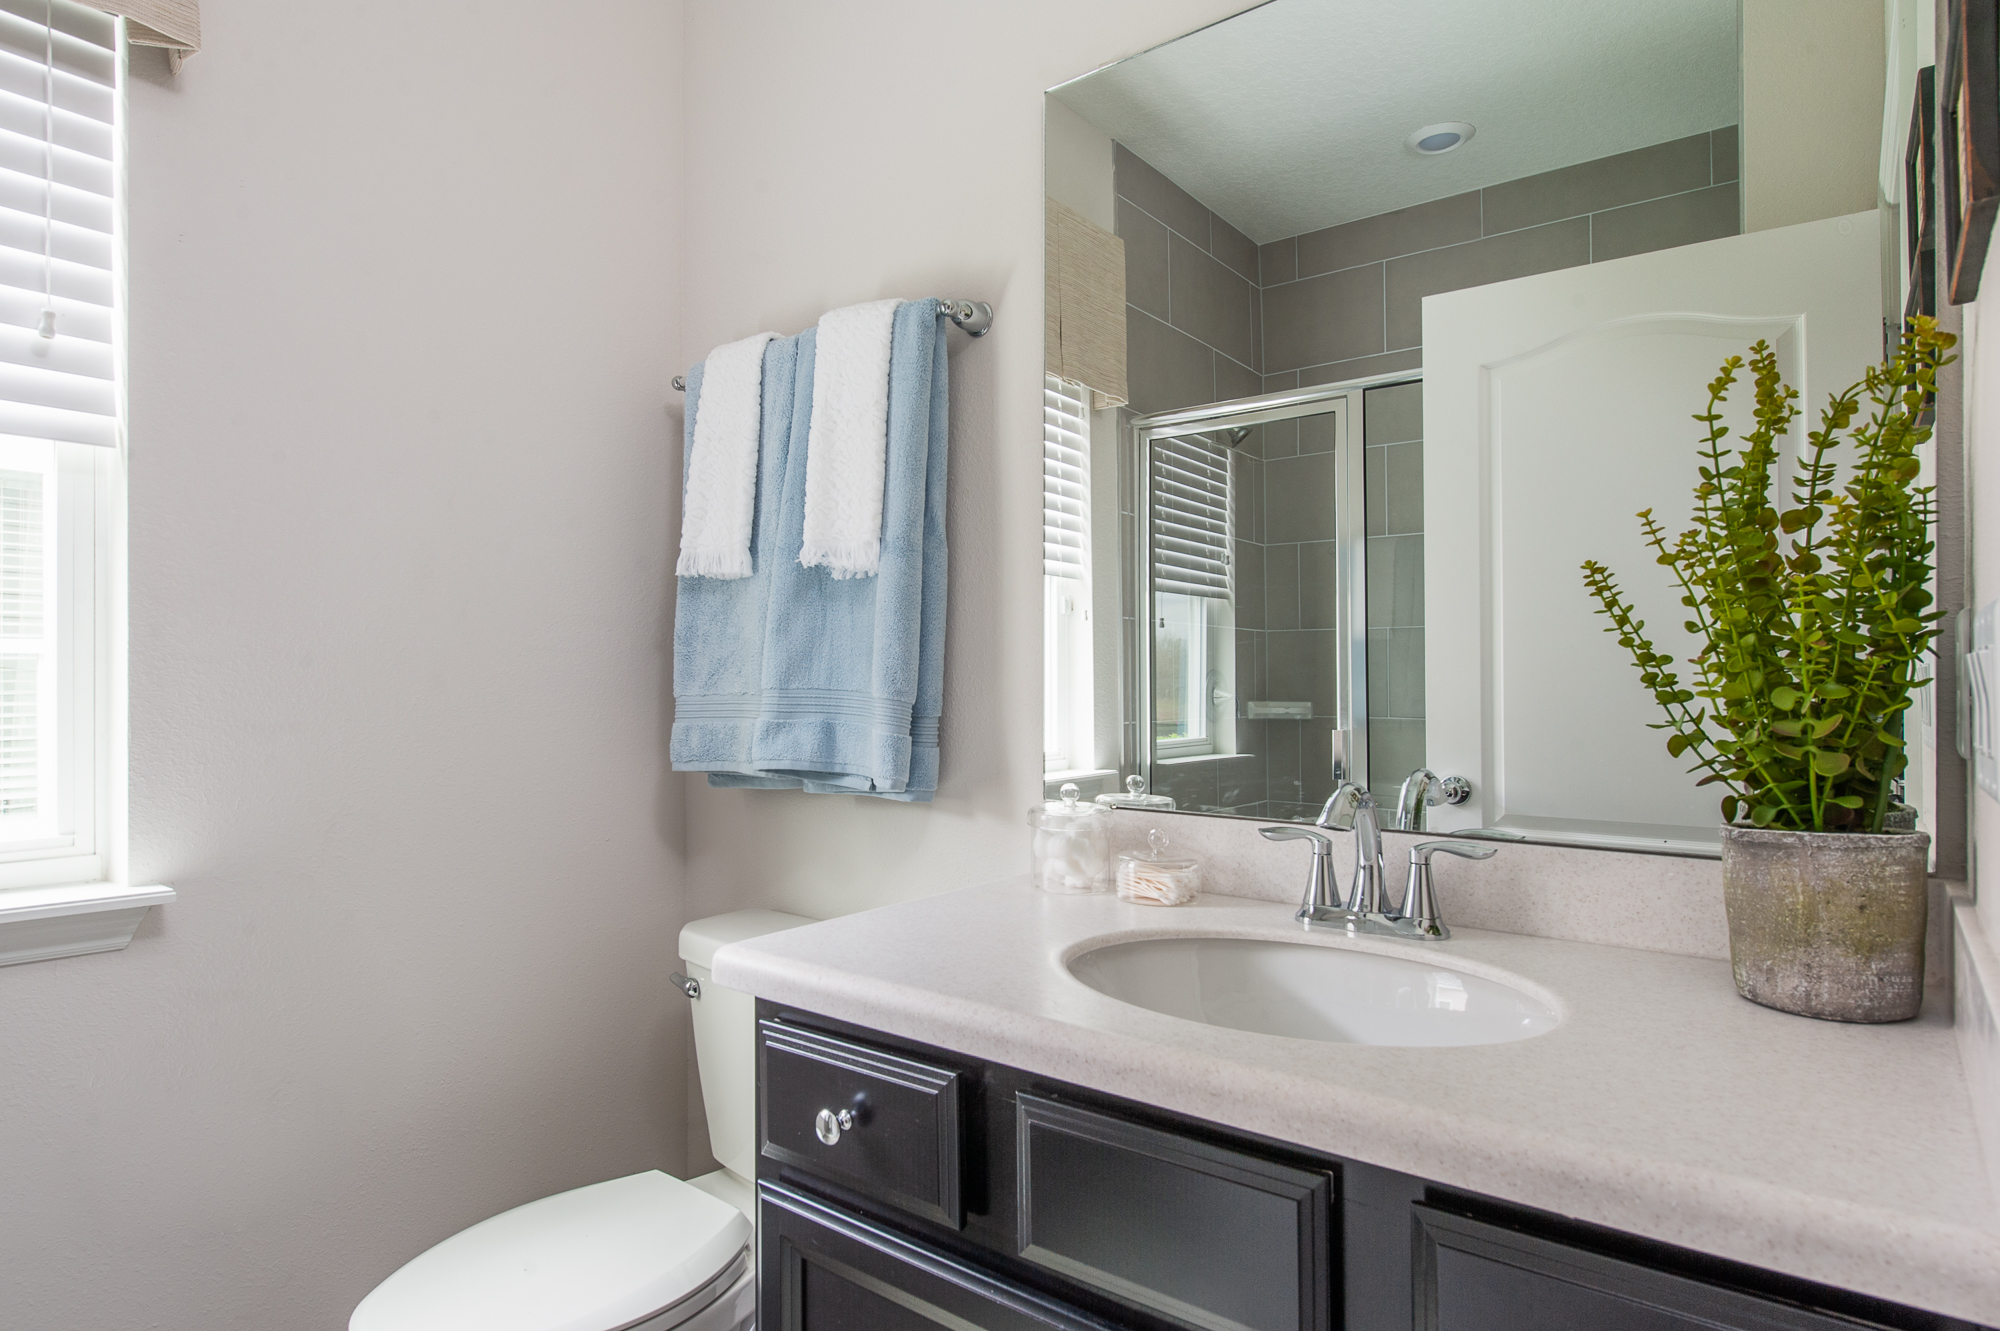 Micamy Design Studio_Model Home_Interior Design_Orchard Cove_Modern Coastal_Bathroom_Guest Bathroom.jpg